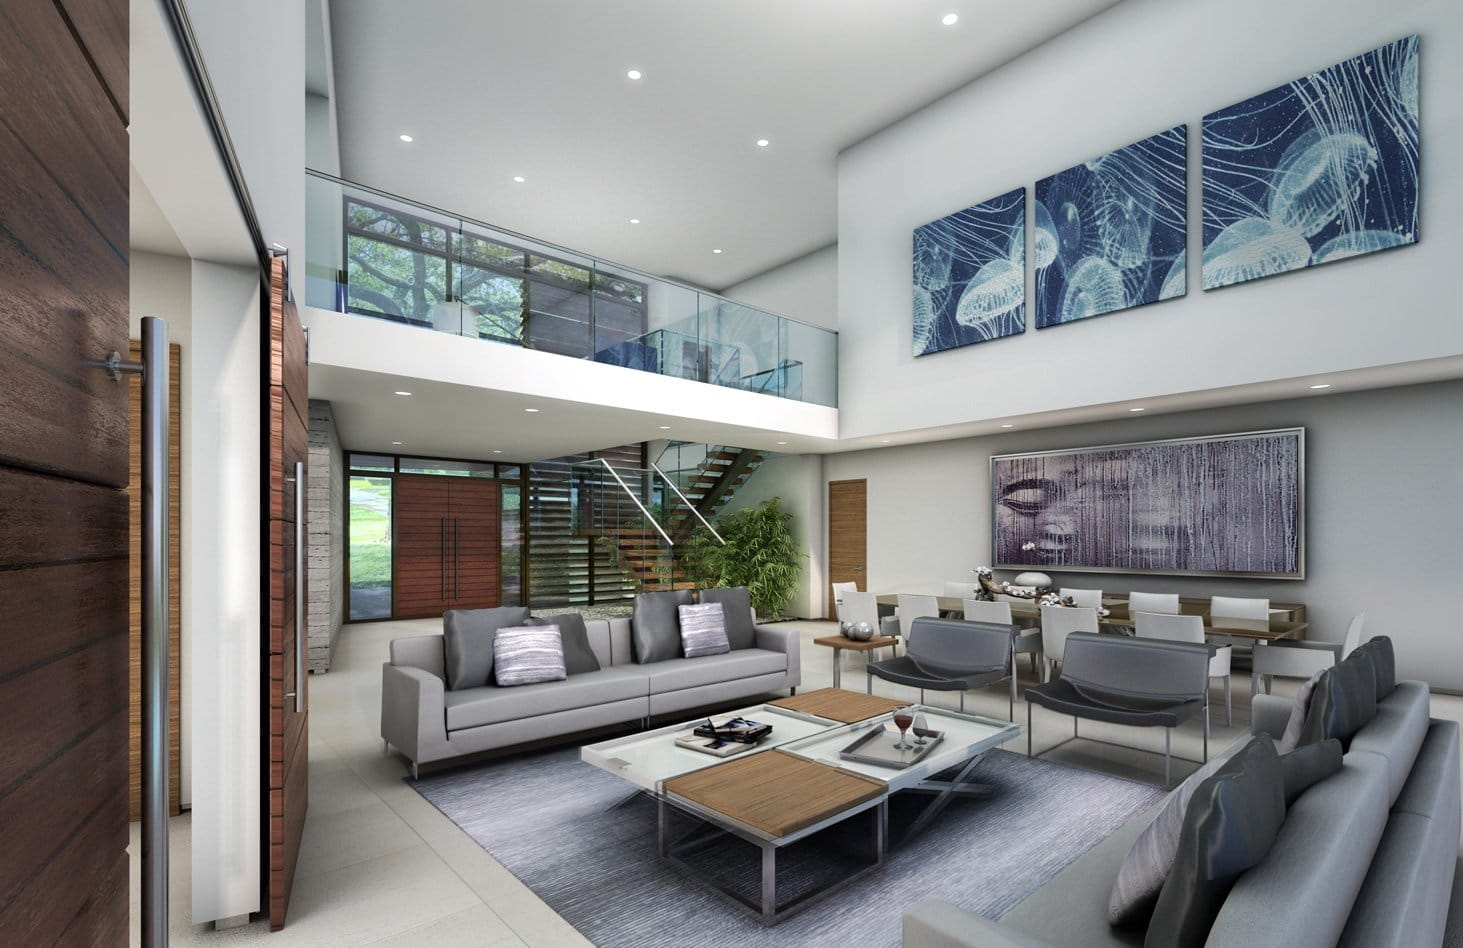 Interior Design living room view project in 65 Bal Harbour, Florida